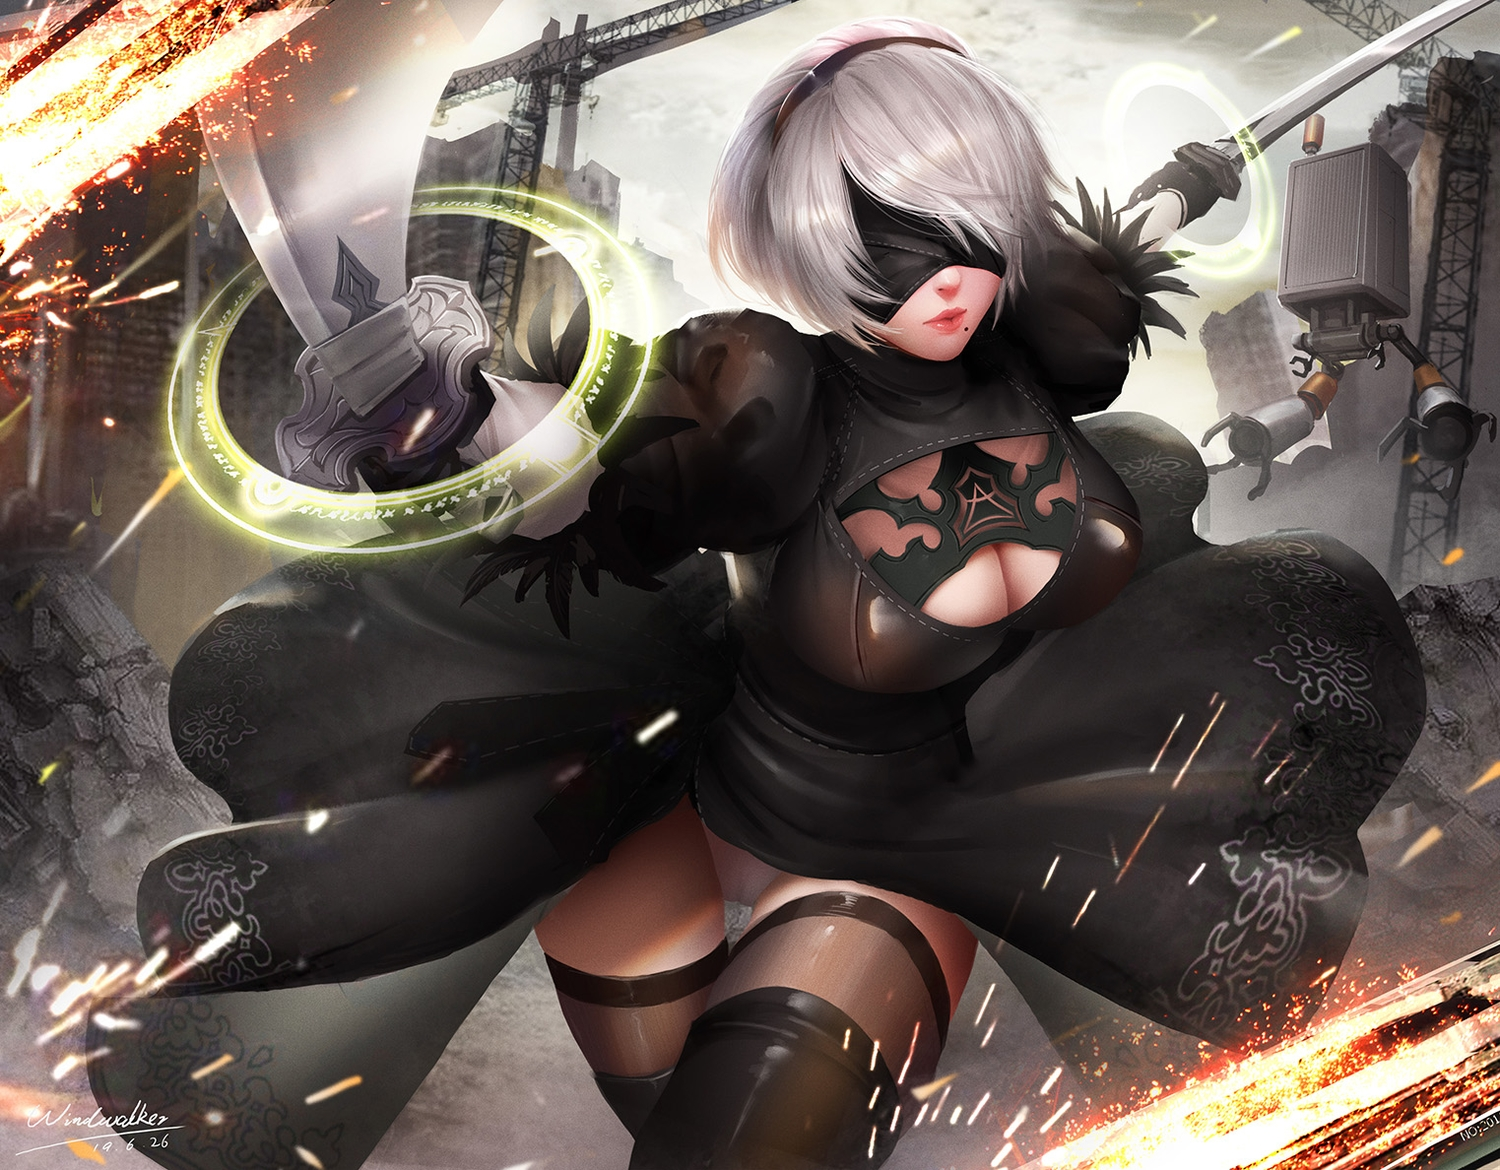 blindfold boots breasts building cameltoe city cleavage dress feathers gray_hair headband katana kaze_no_gyouja leotard nier nier:_automata pod_(nier:_automata) robot ruins short_hair signed sword thighhighs weapon yorha_unit_no._2_type_b